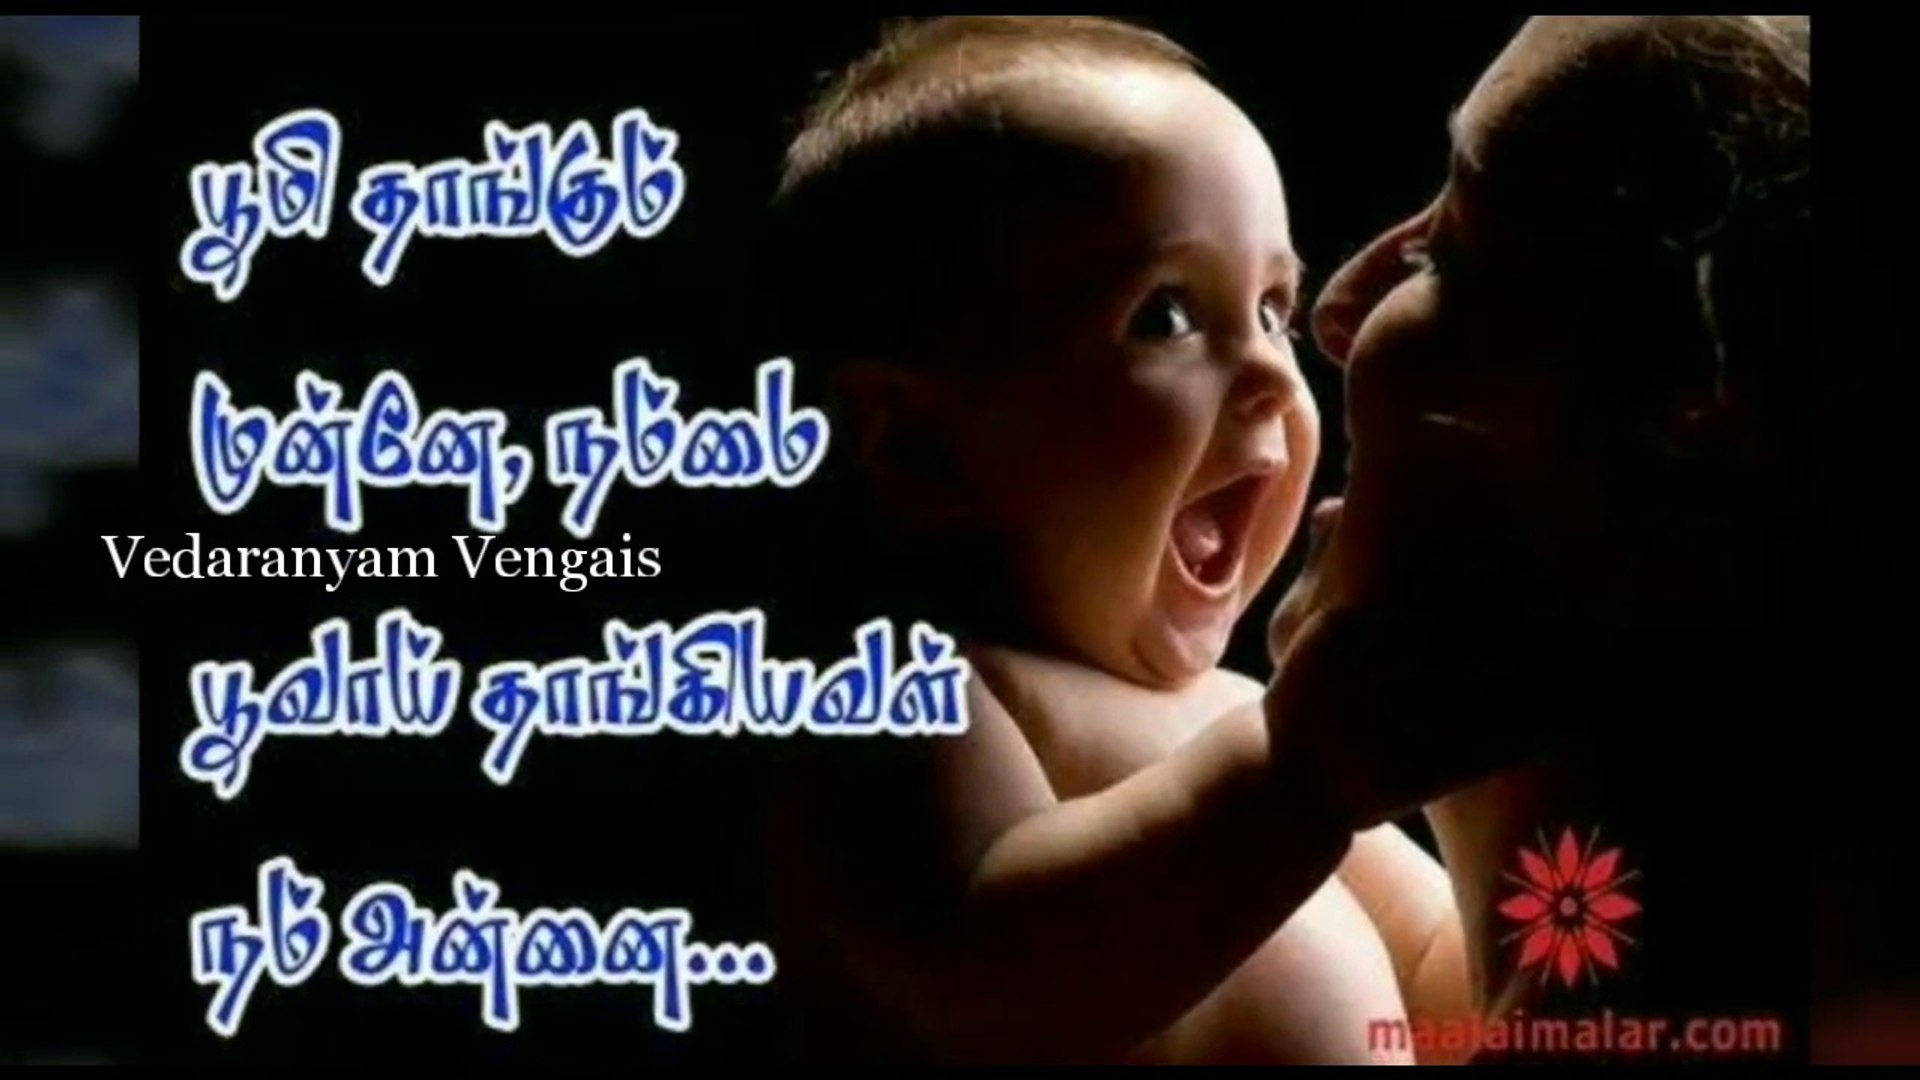 Whatsapp Dp Appa Amma Dp Images Girls Dp